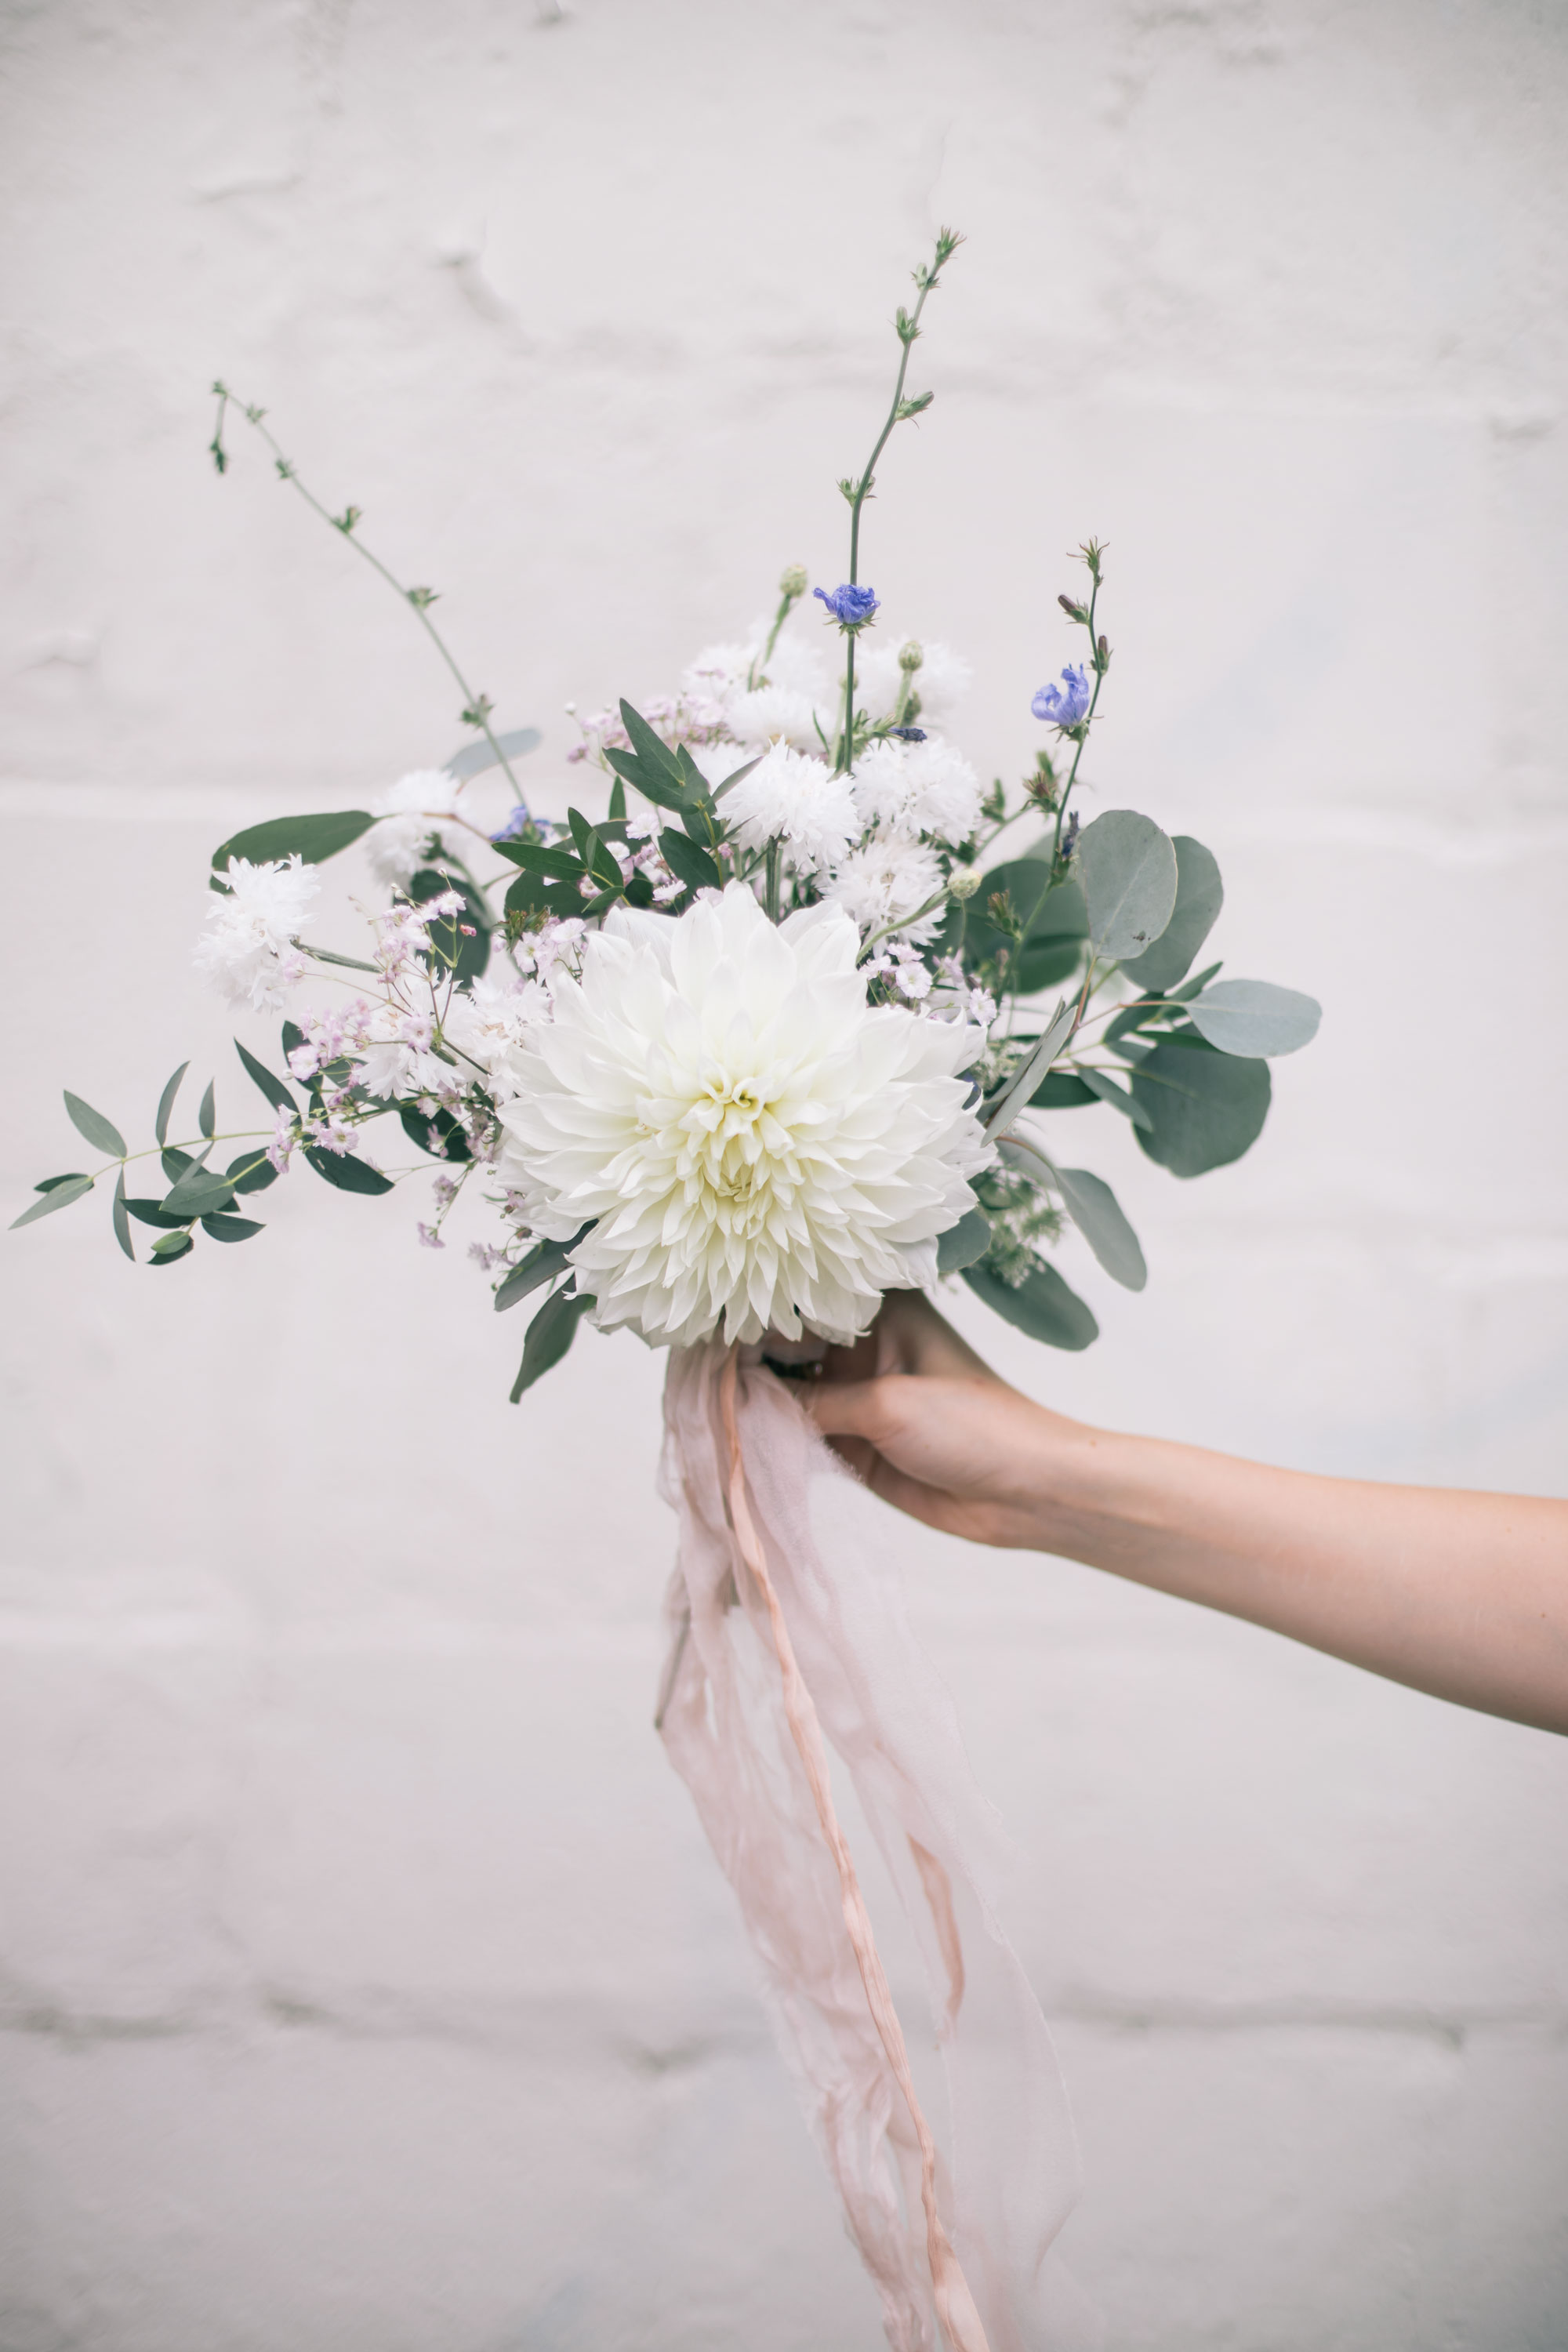 How To Make A Hand Tied Garden Inspired Flower Bouquet The